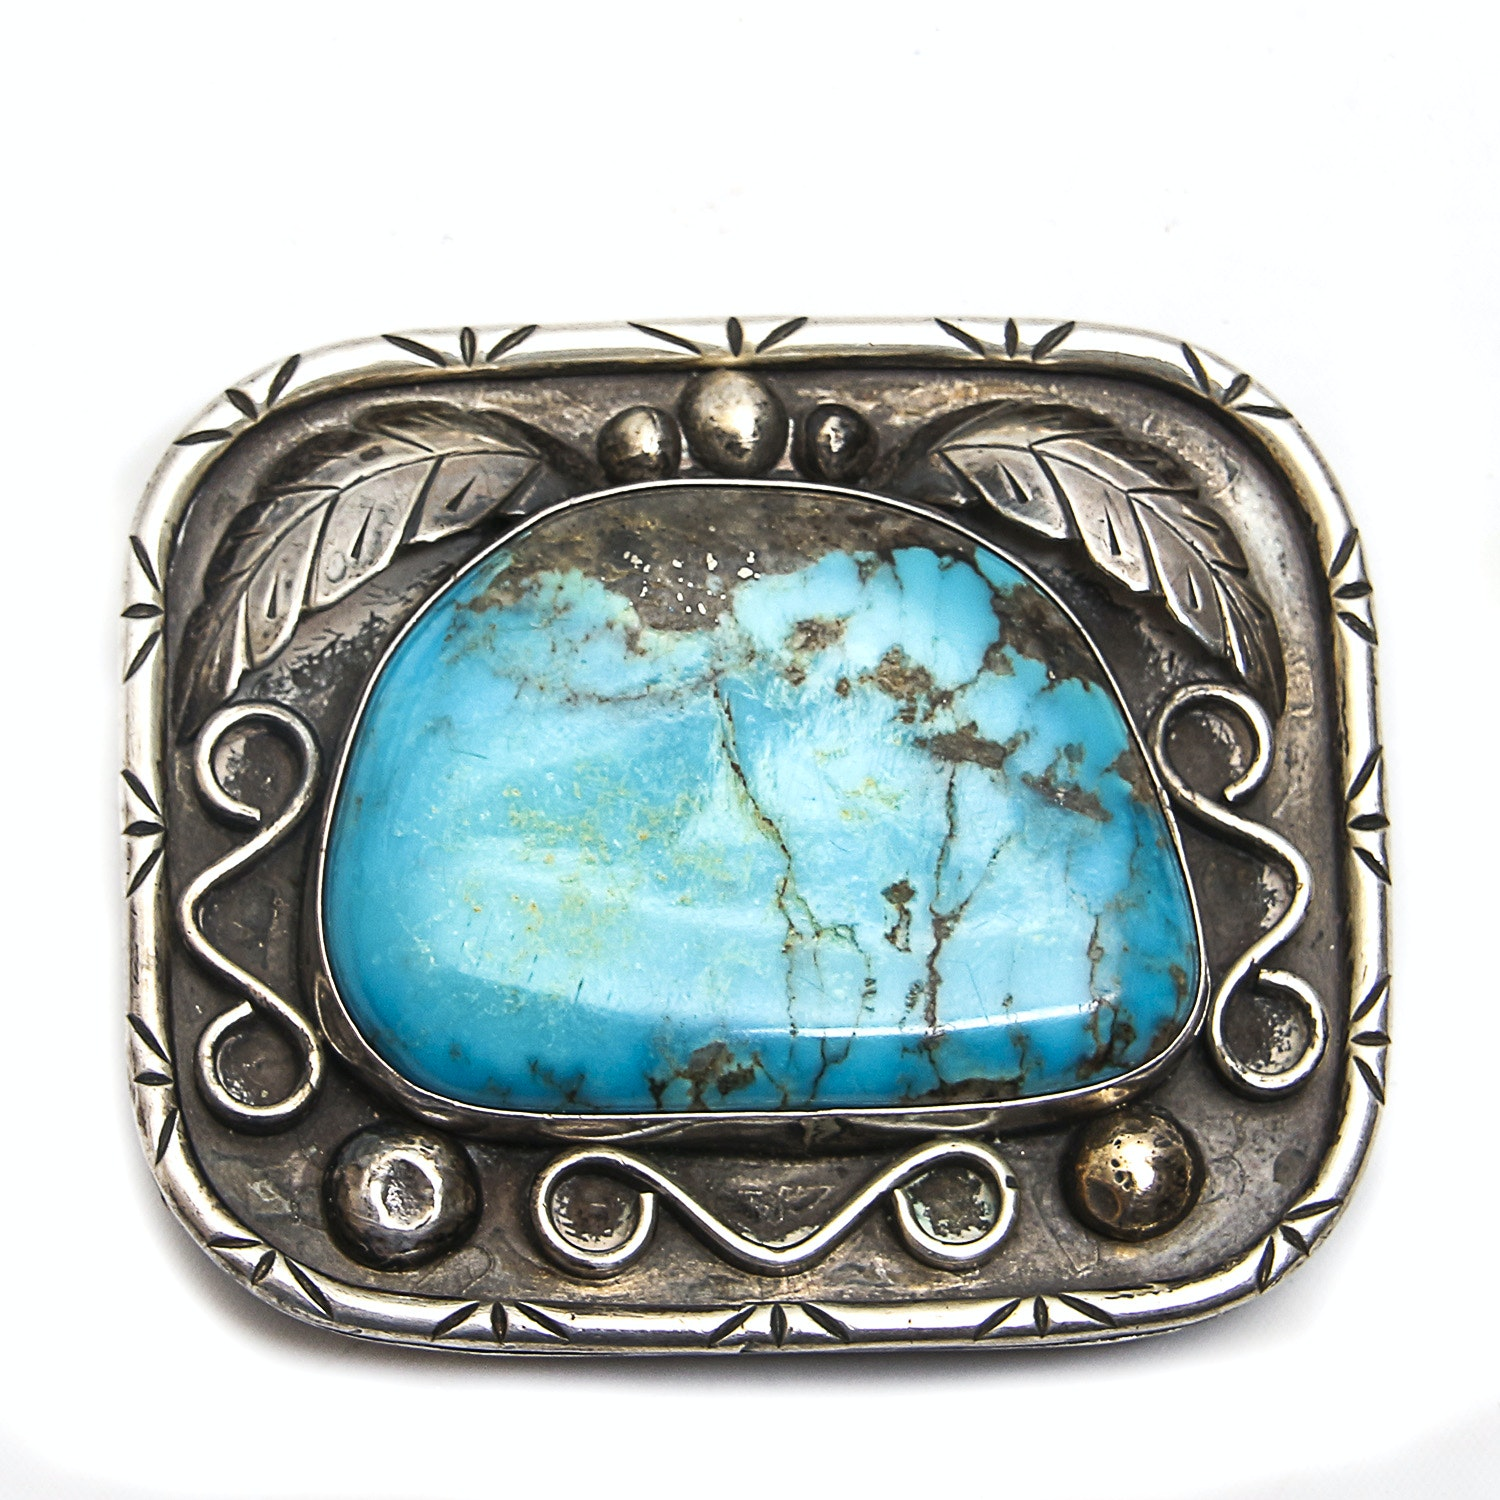 Fannie Platero Turquoise Sterling Silver Navajo Belt Buckle